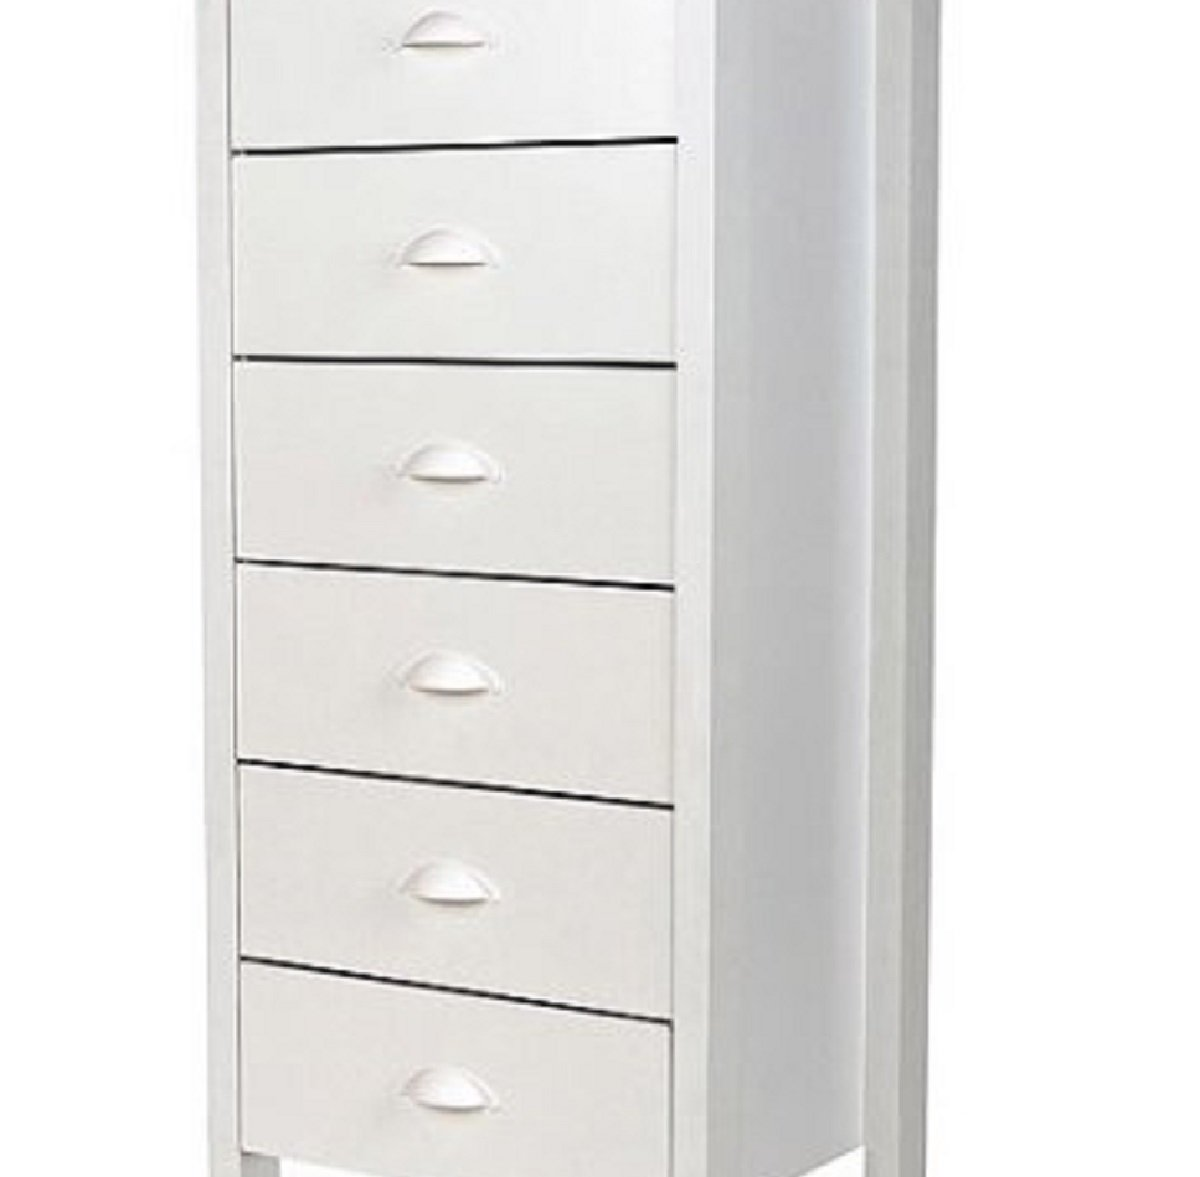 6-Drawer White Elegant Design Completely Removable Drawers Plastic Cup-Style Handles Wood Composite Construction… -  - dressers-bedroom-furniture, bedroom-furniture, bedroom - 6107HBFIDsL -